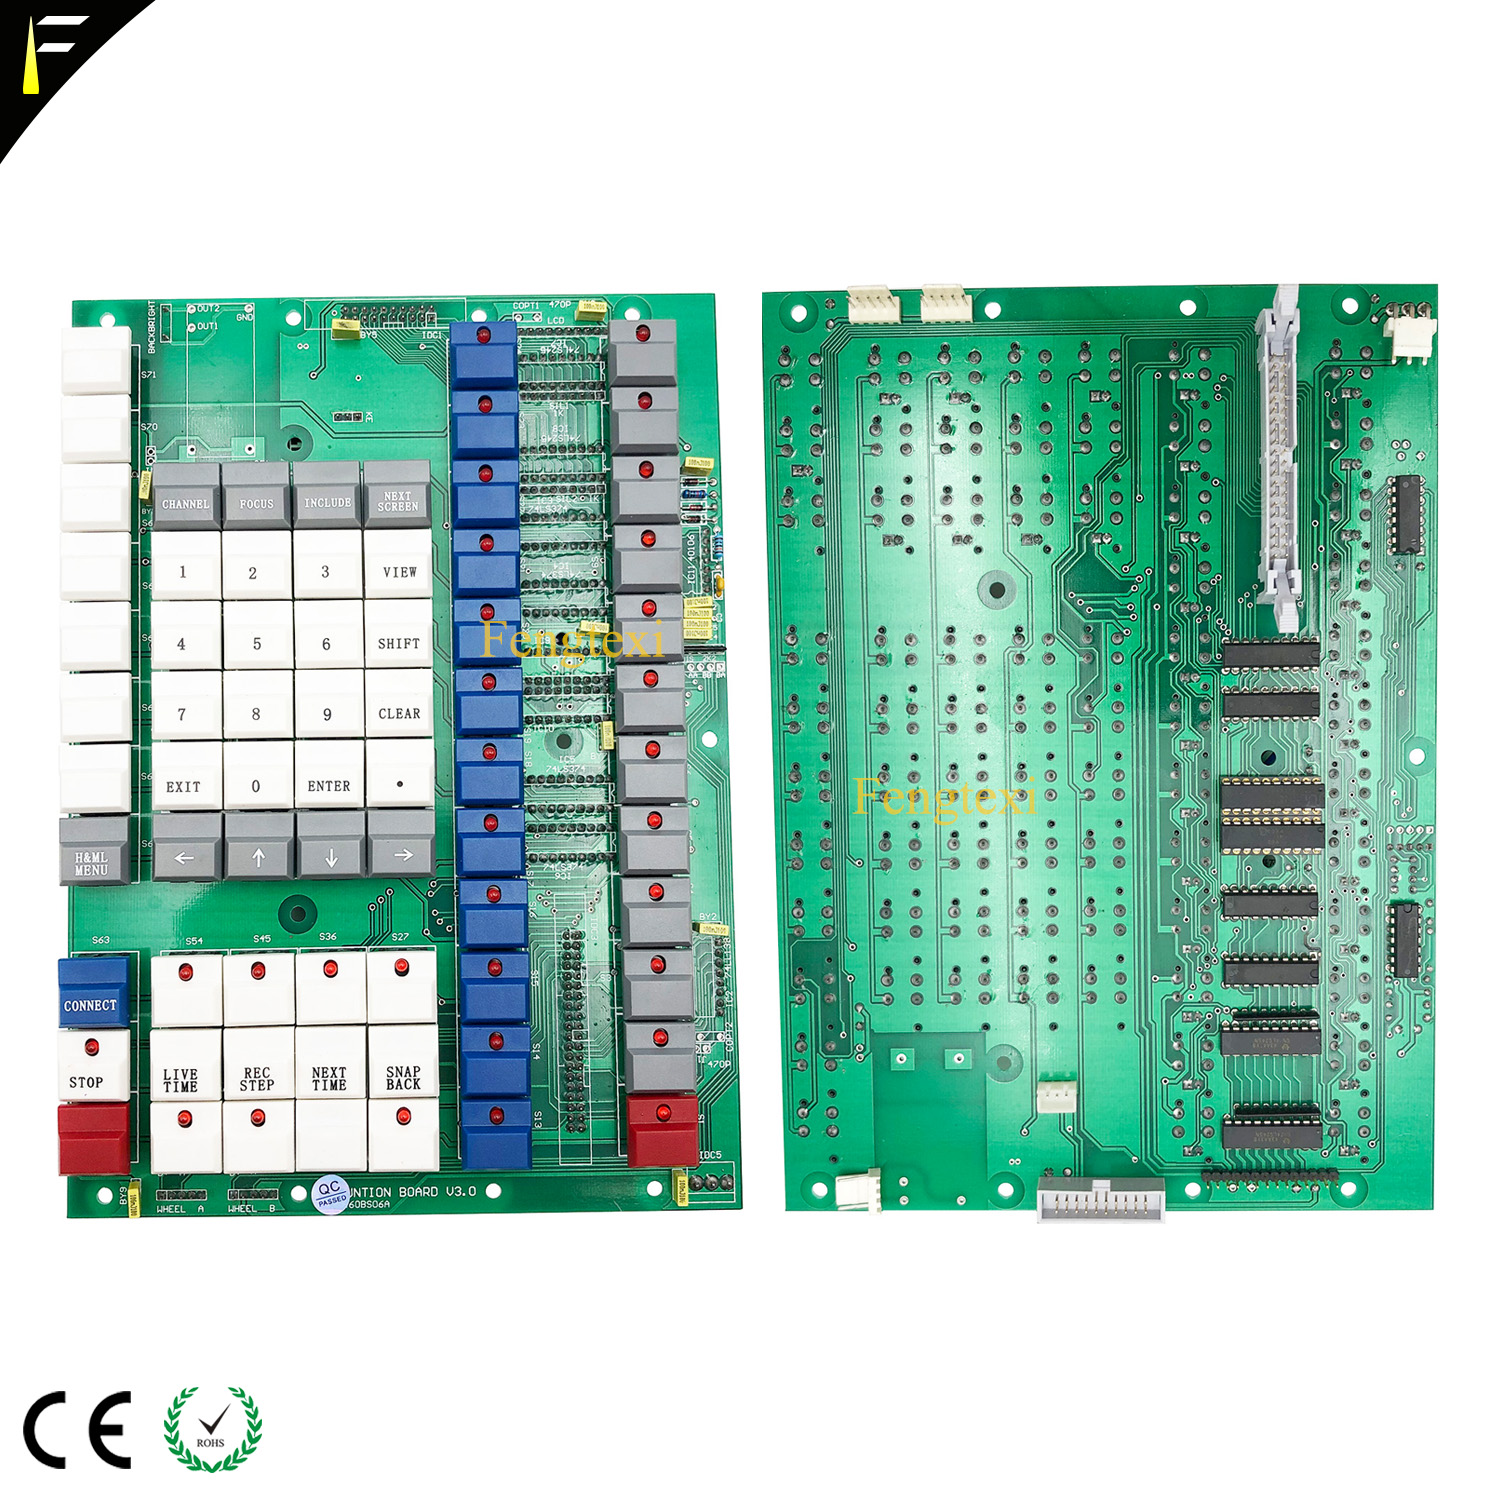 All New 2010 Pearl Controller Function Operate Mother Board 2008 Pearl Console Editor Board Function Board